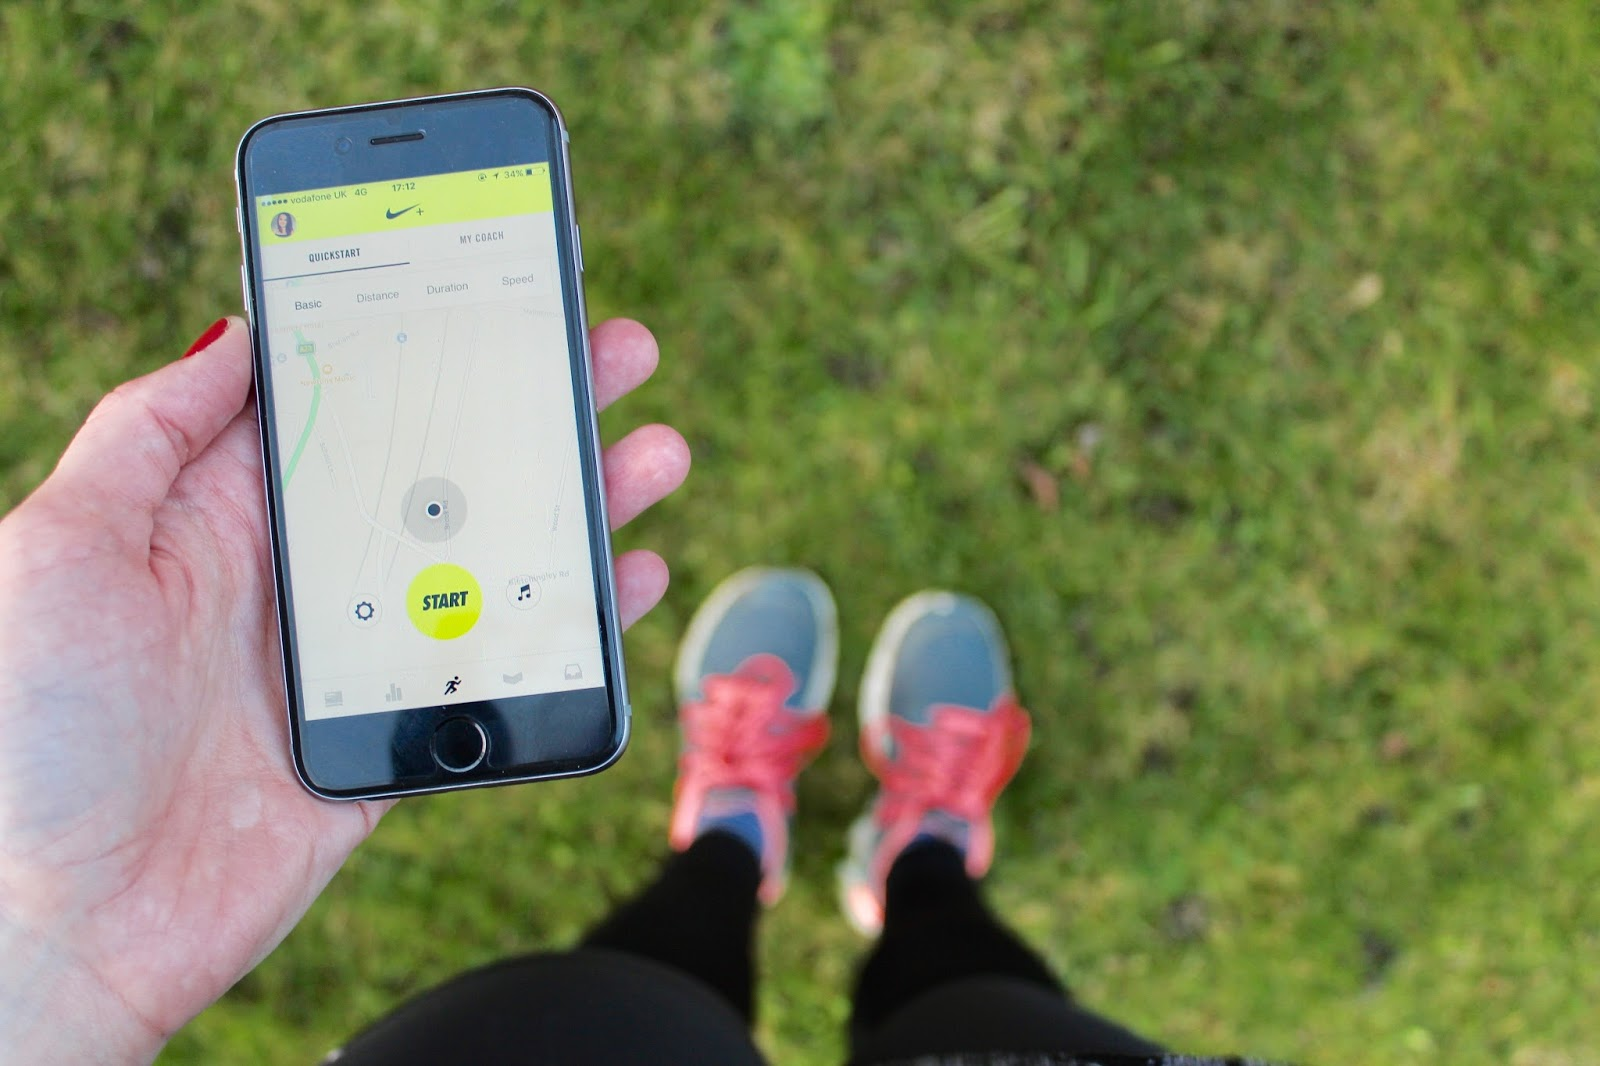 running nike app exercise fitness health blog blogger bloggers inspiration kirstie pickering